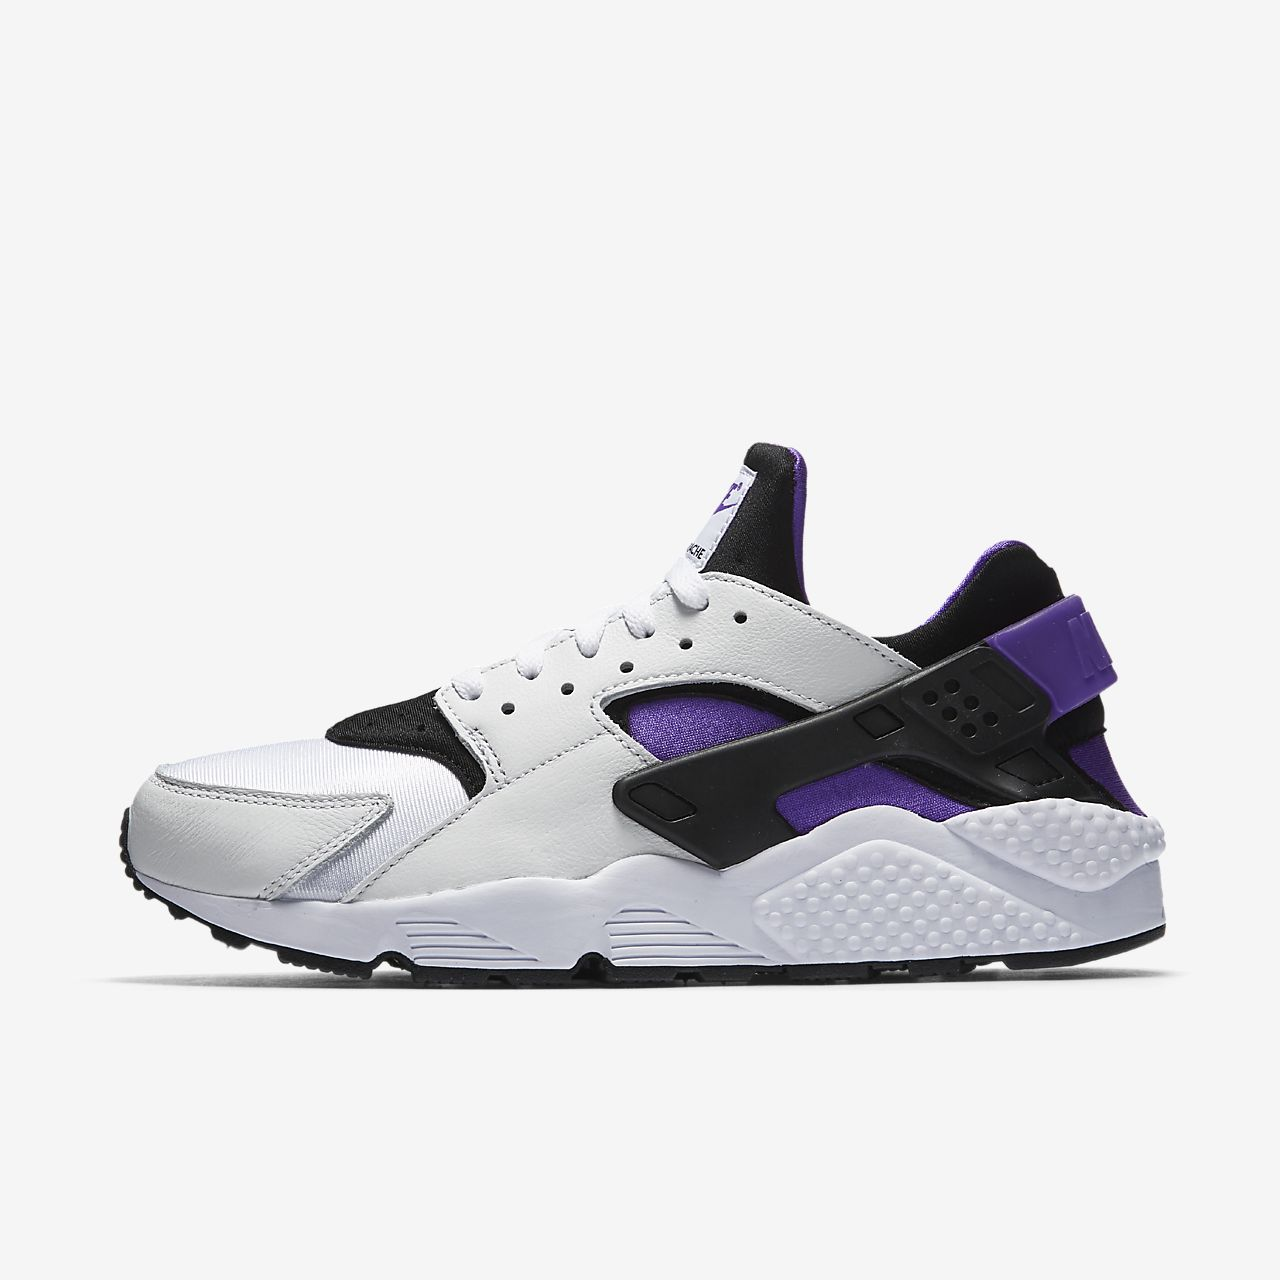 6124b3b630b5 Nike Air Huarache  91 QS Men s Shoe. Nike.com